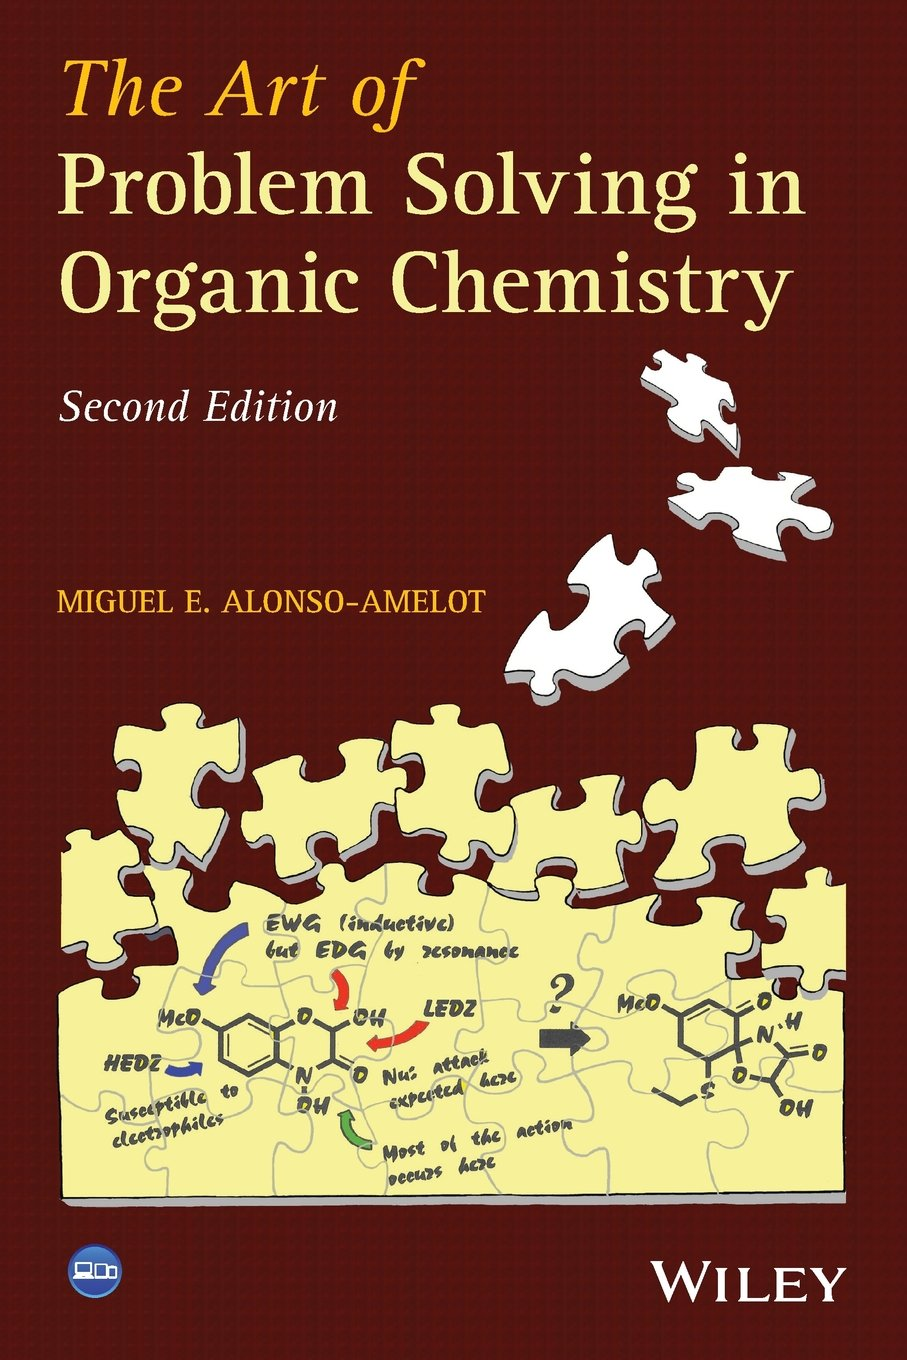 buy the art of problem solving in organic chemistry book online at buy the art of problem solving in organic chemistry book online at low prices in the art of problem solving in organic chemistry reviews ratings